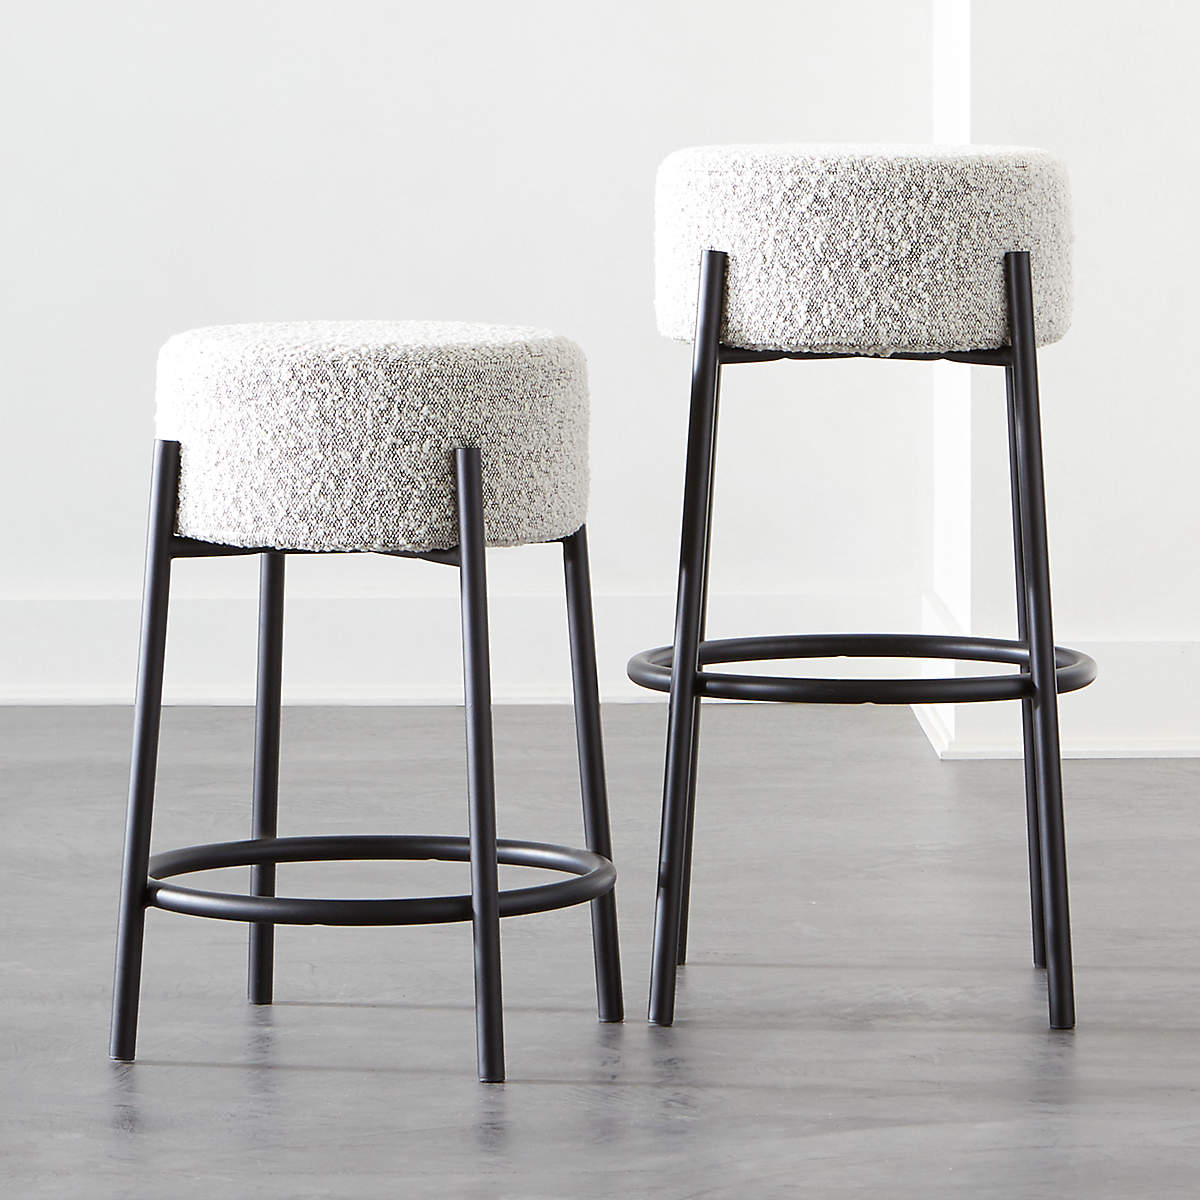 Peg Upholstered Bar Stools- image 1 of 2 (Open Larger View)